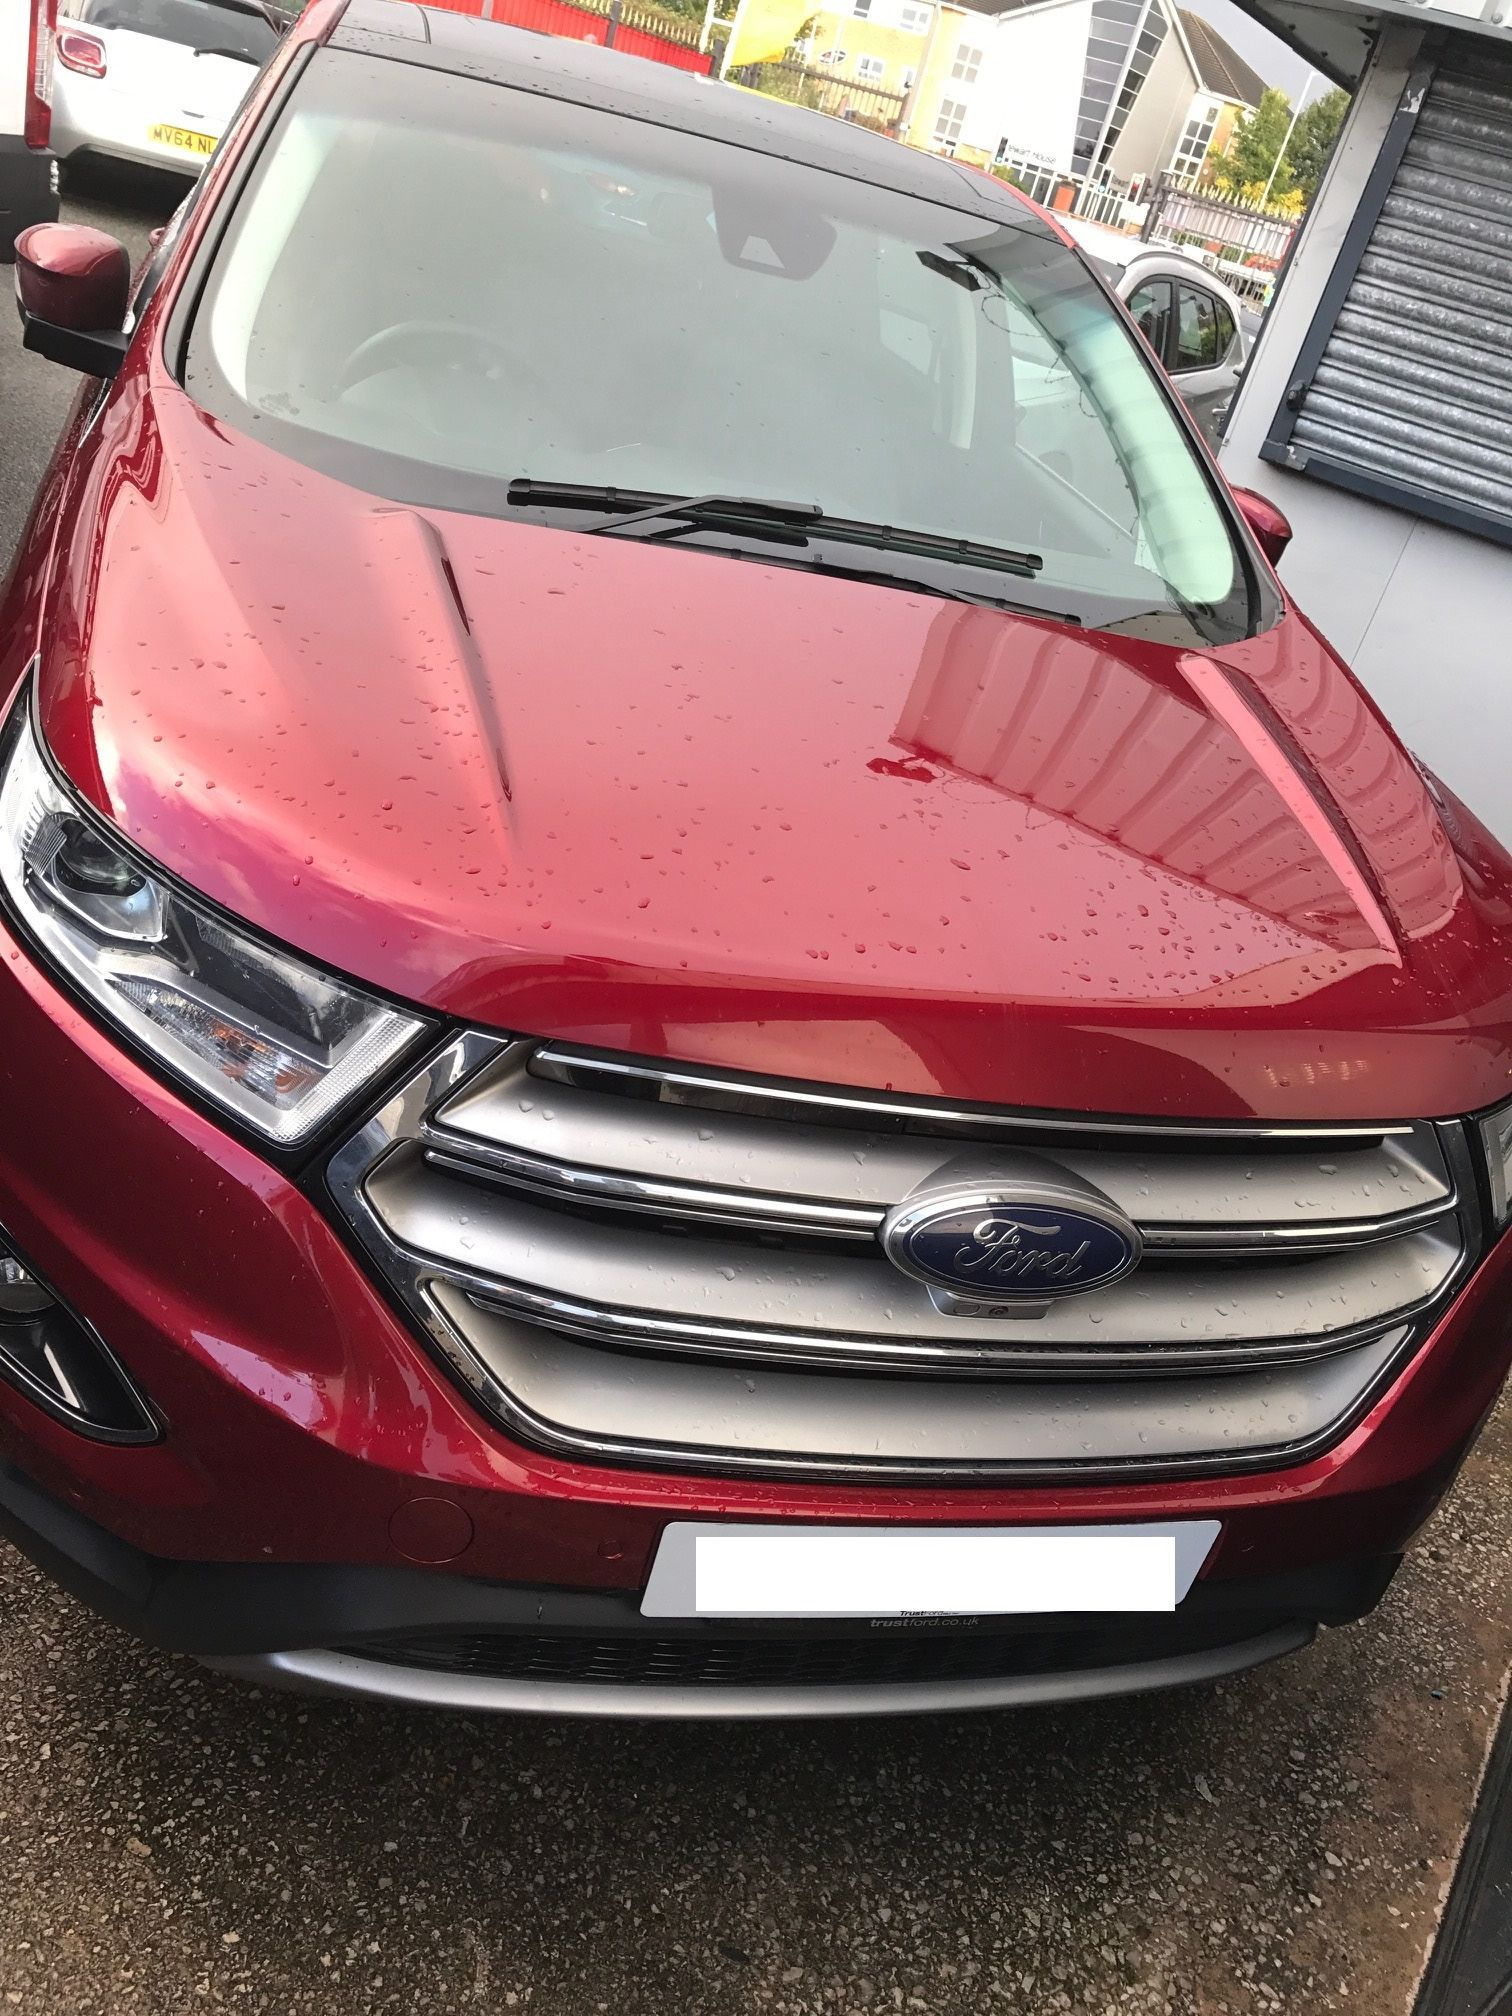 The Ford Edge Leasing Deal One Of The Many Cars And Vans